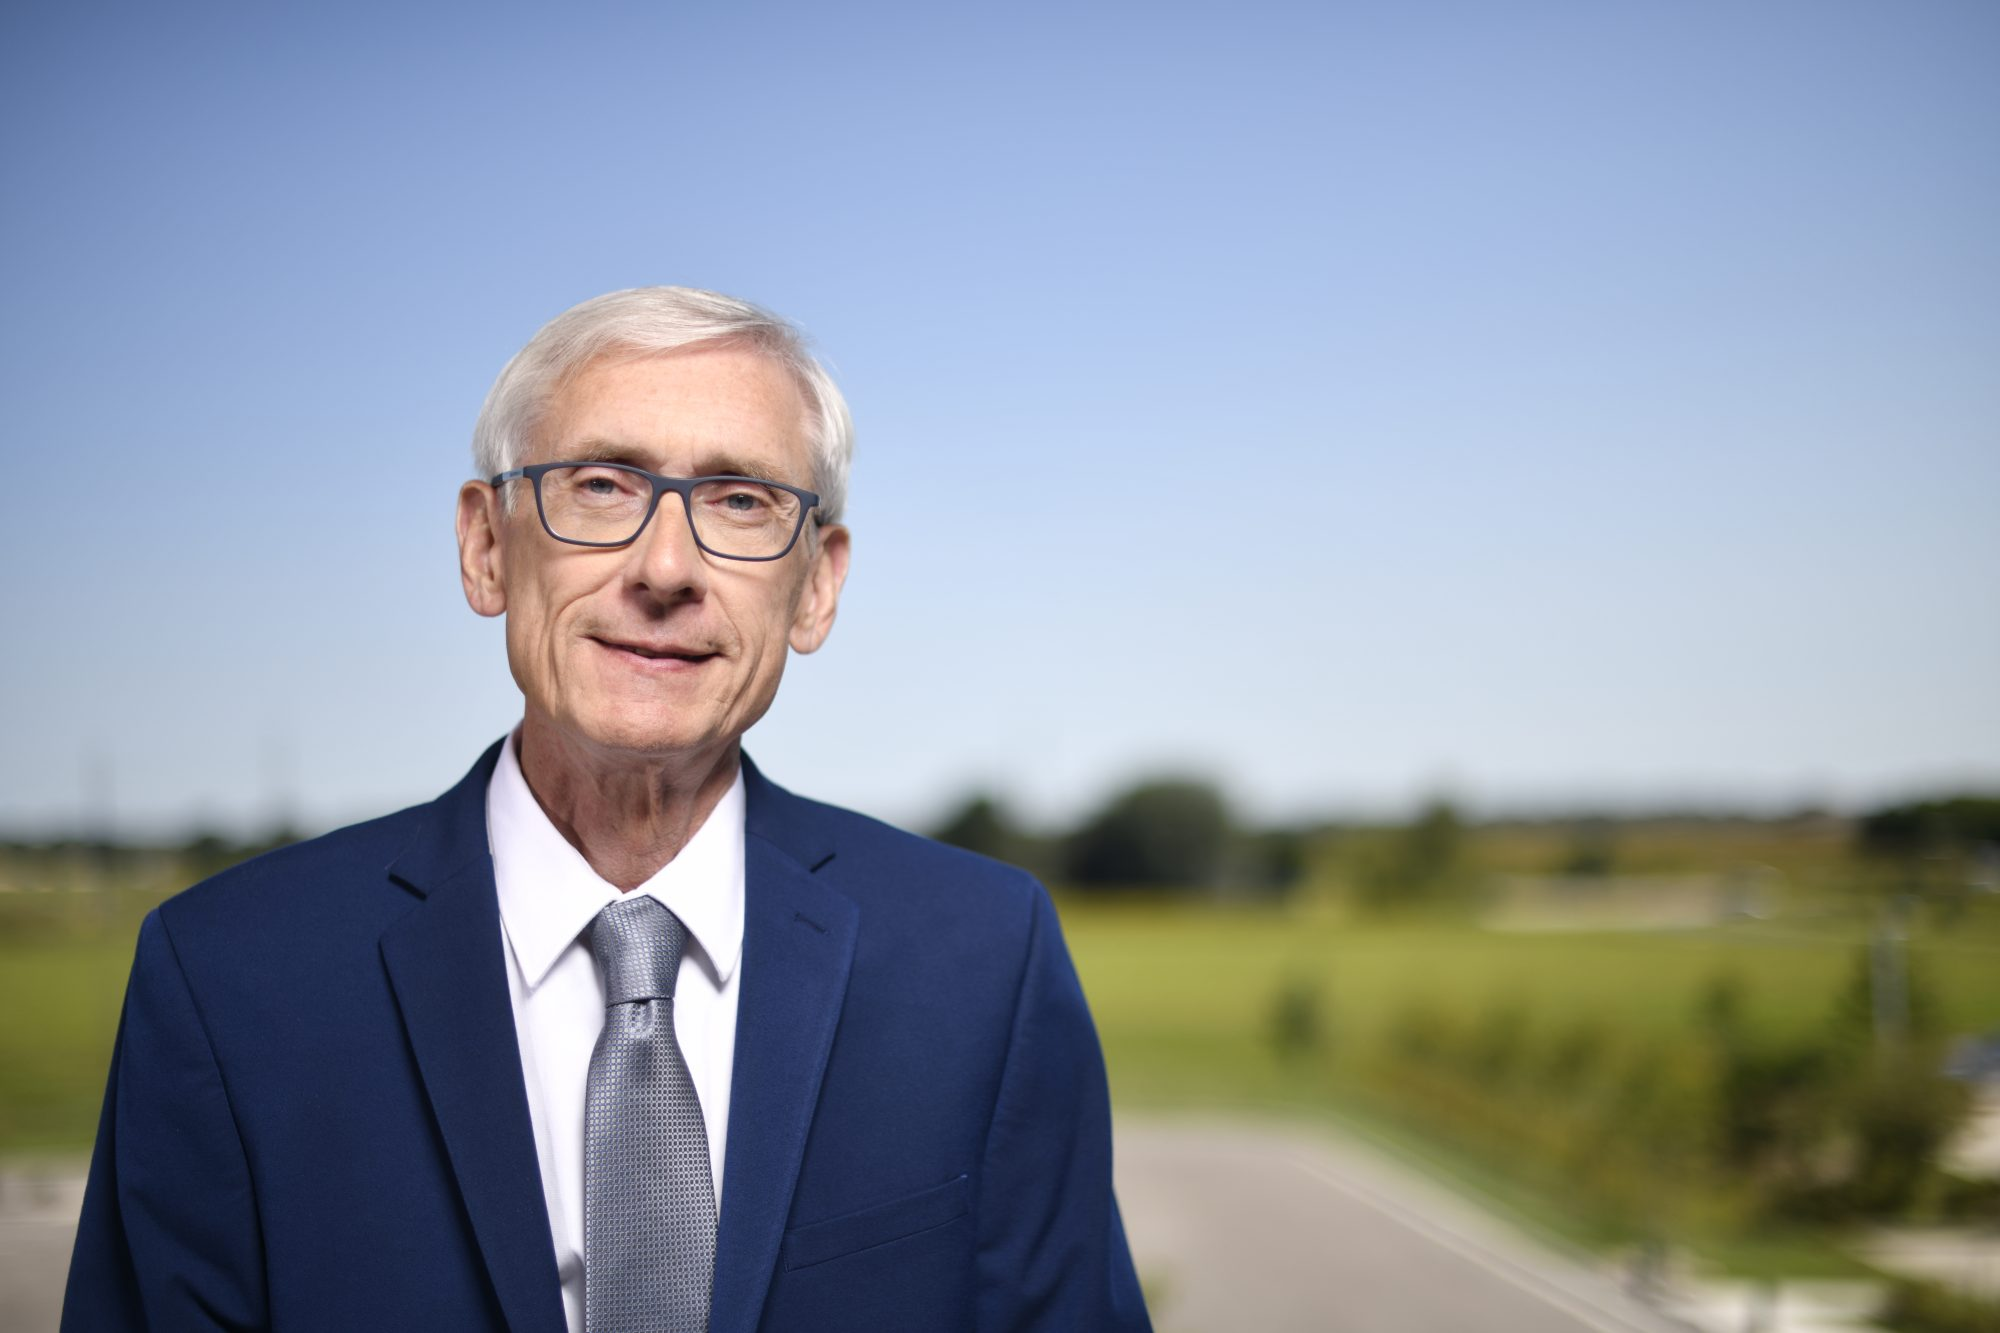 Gov. Evers Provides Update on the Investment of Nearly $2 Billion in Wisconsin Communities in Response to COVID-19 Pandemic